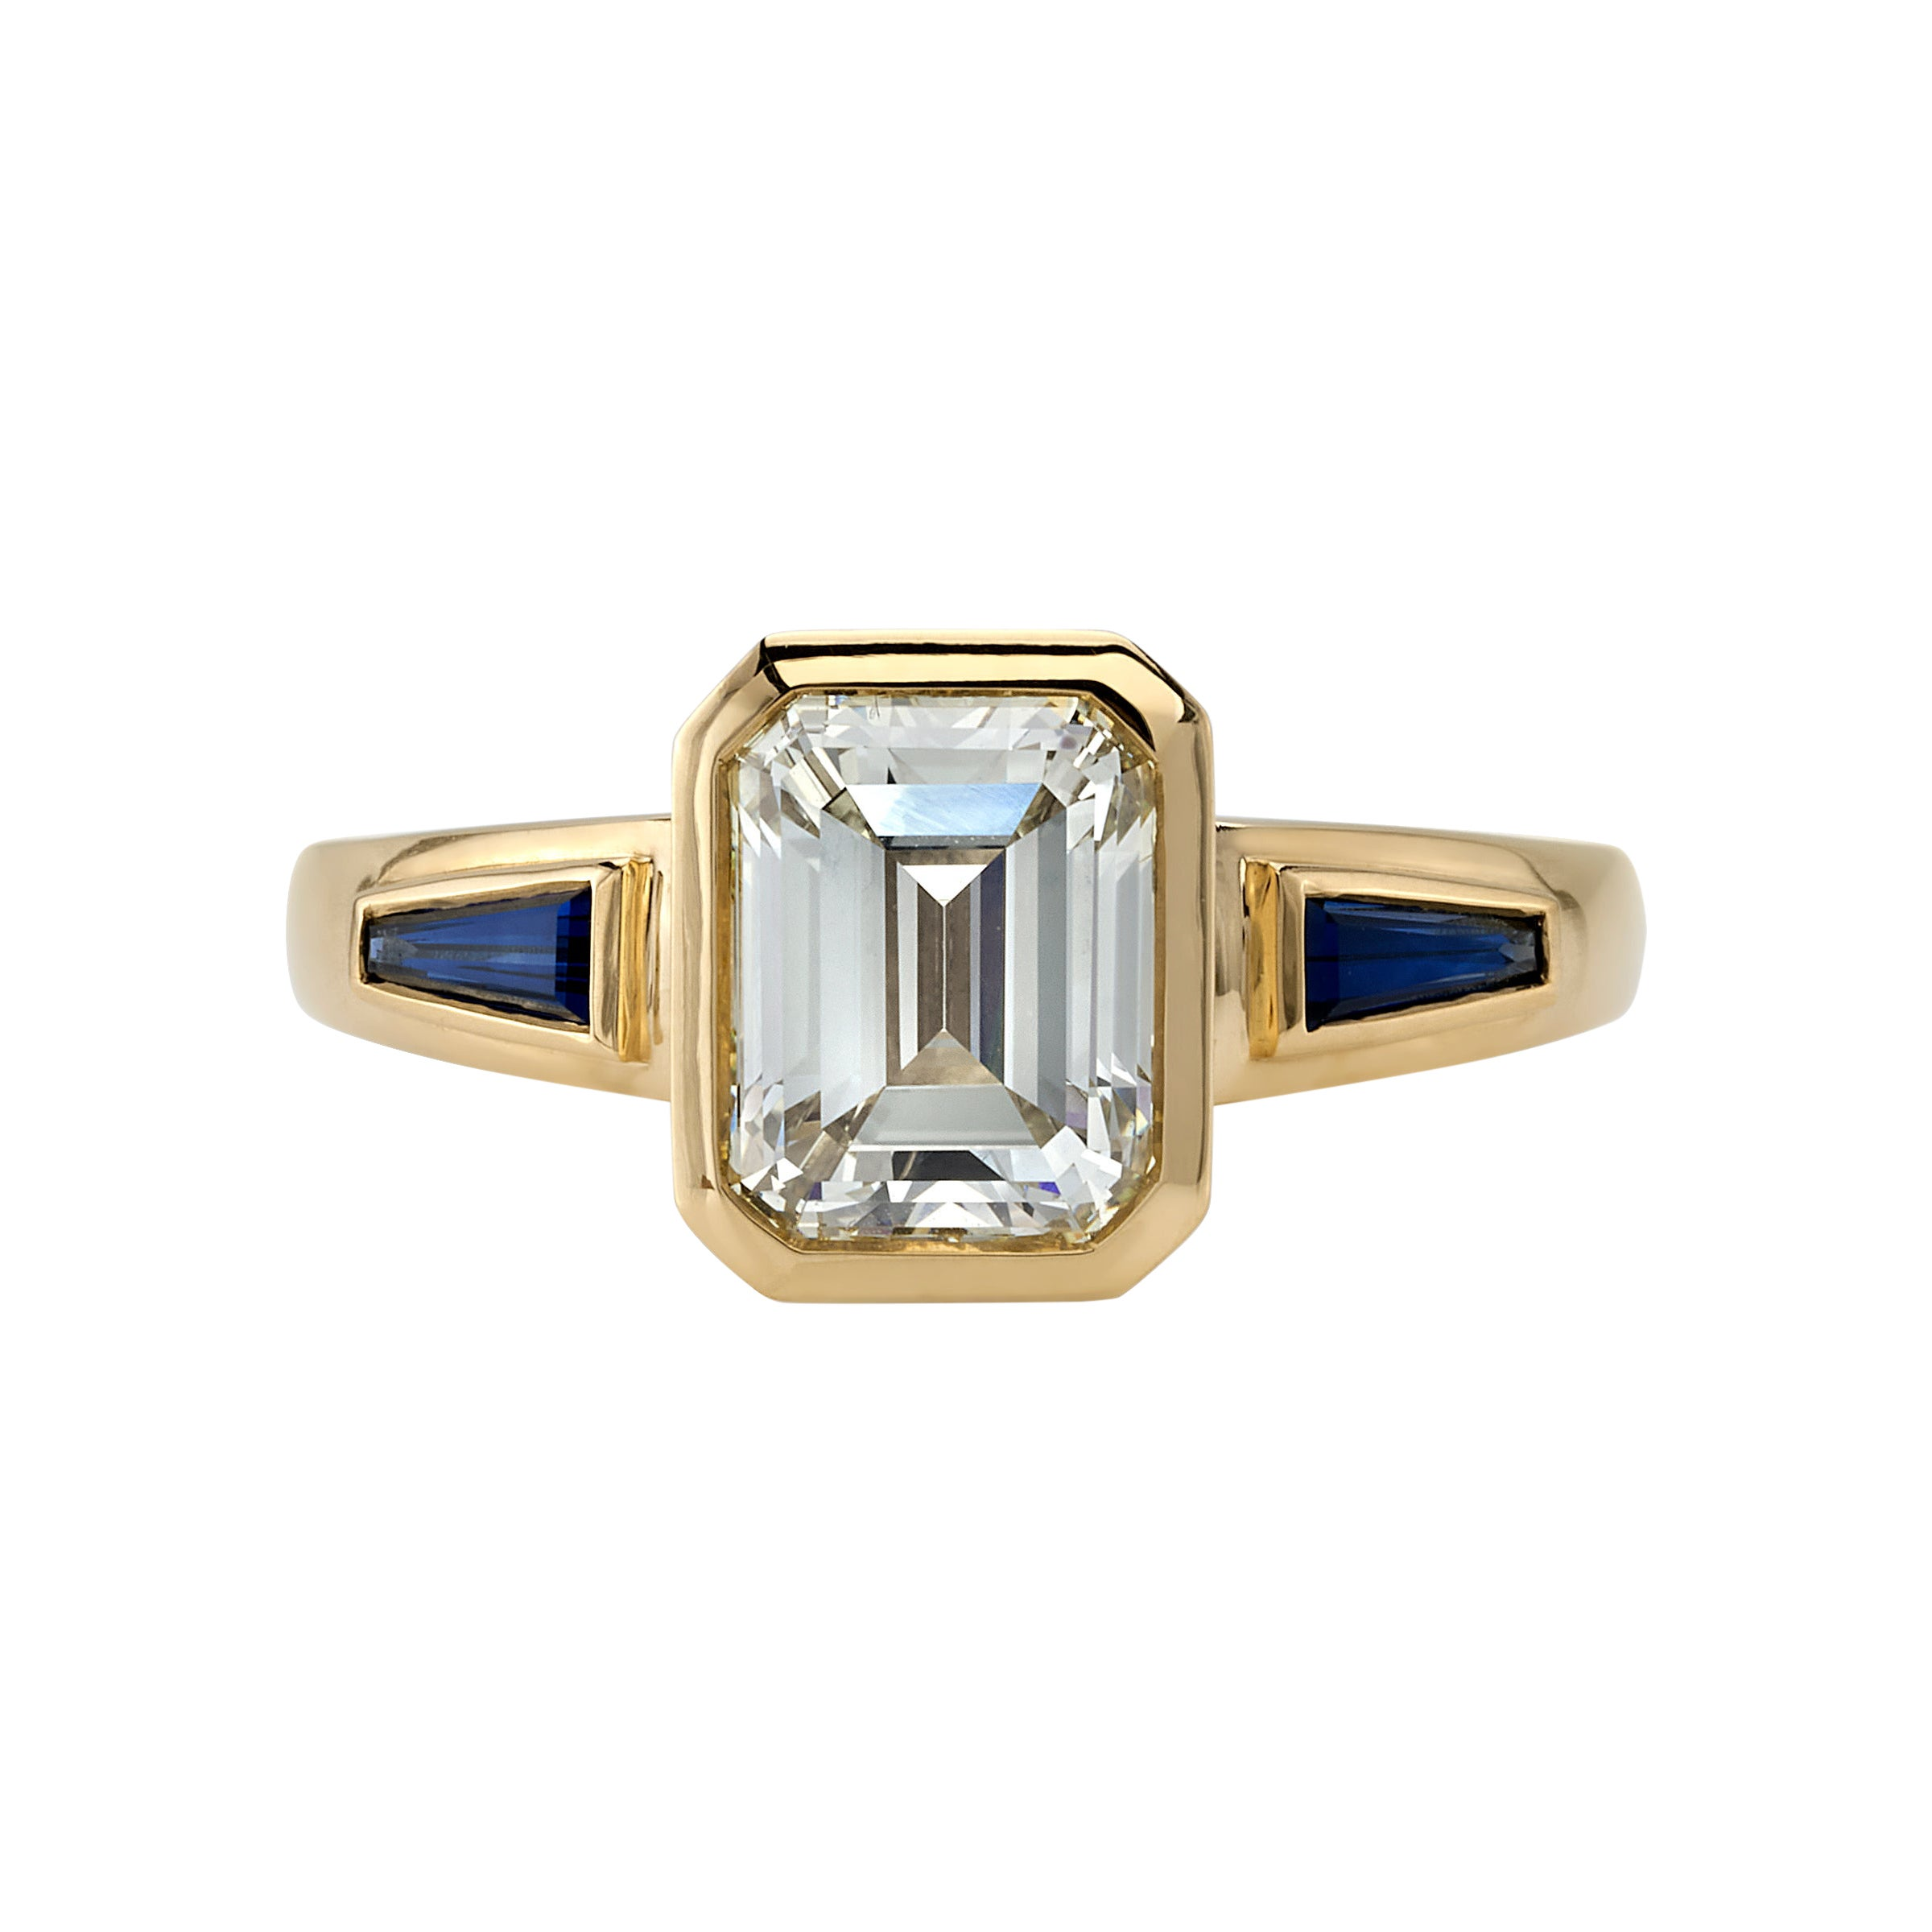 2.09 Carat Emerald Cut Diamond Set in a Handcrafted Yellow Gold Engagement Ring